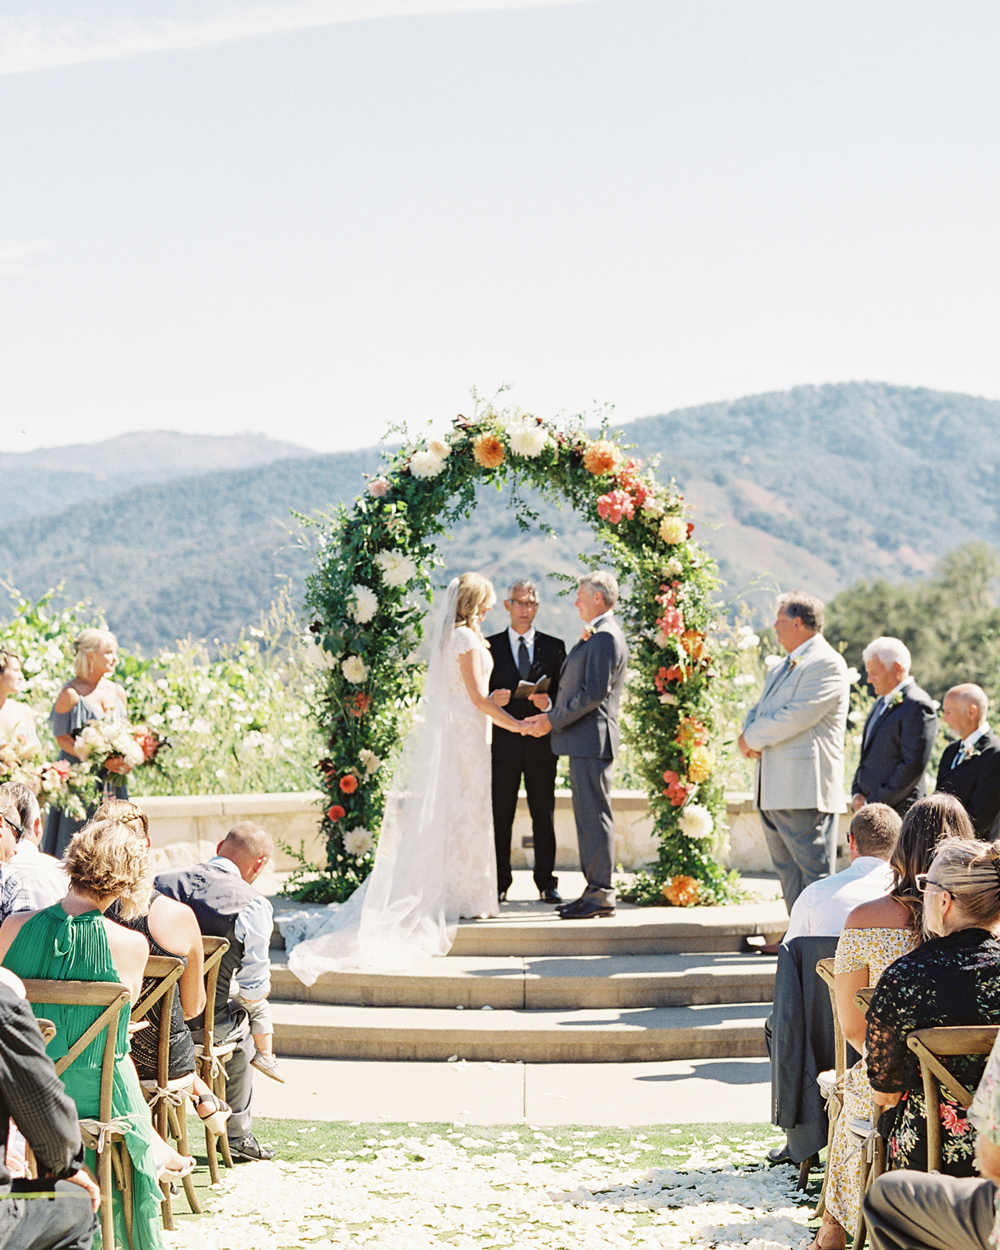 laurie michael wedding ceremony under floral arch